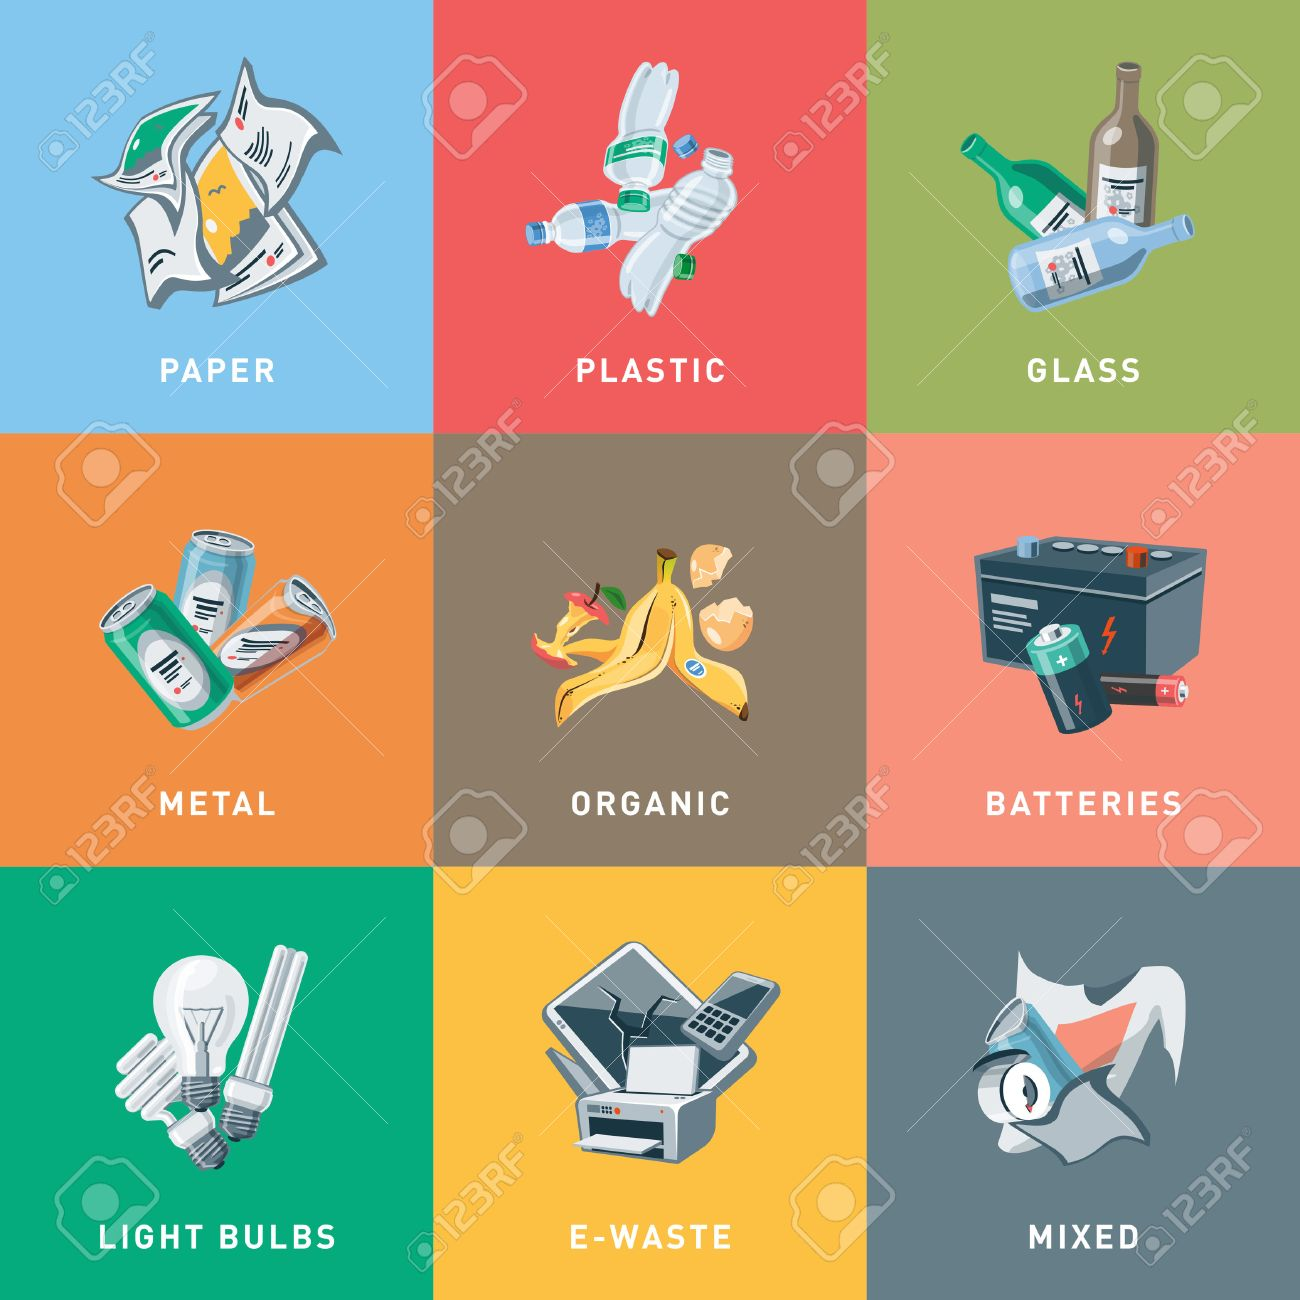 Colored illustration of trash separationcategories with organic, paper, plastic, glass, metal, e-waste, batteries, light bulbs and mixed garbage in cartoon style. Waste types segregation recycling management concept. - 63278369